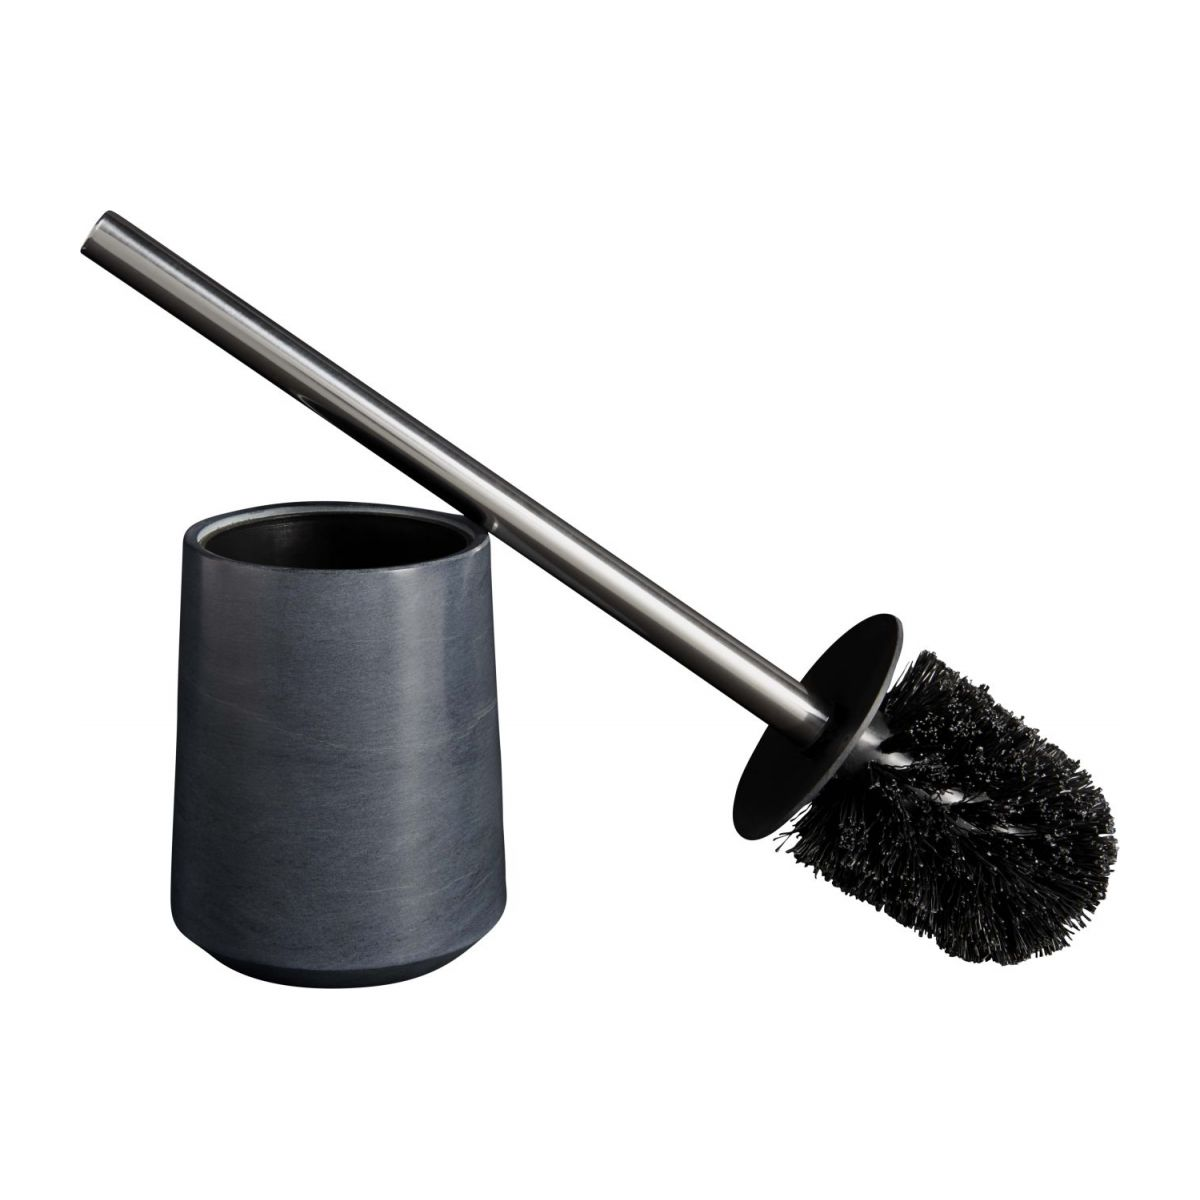 Grey soapstone toilet brush n°2